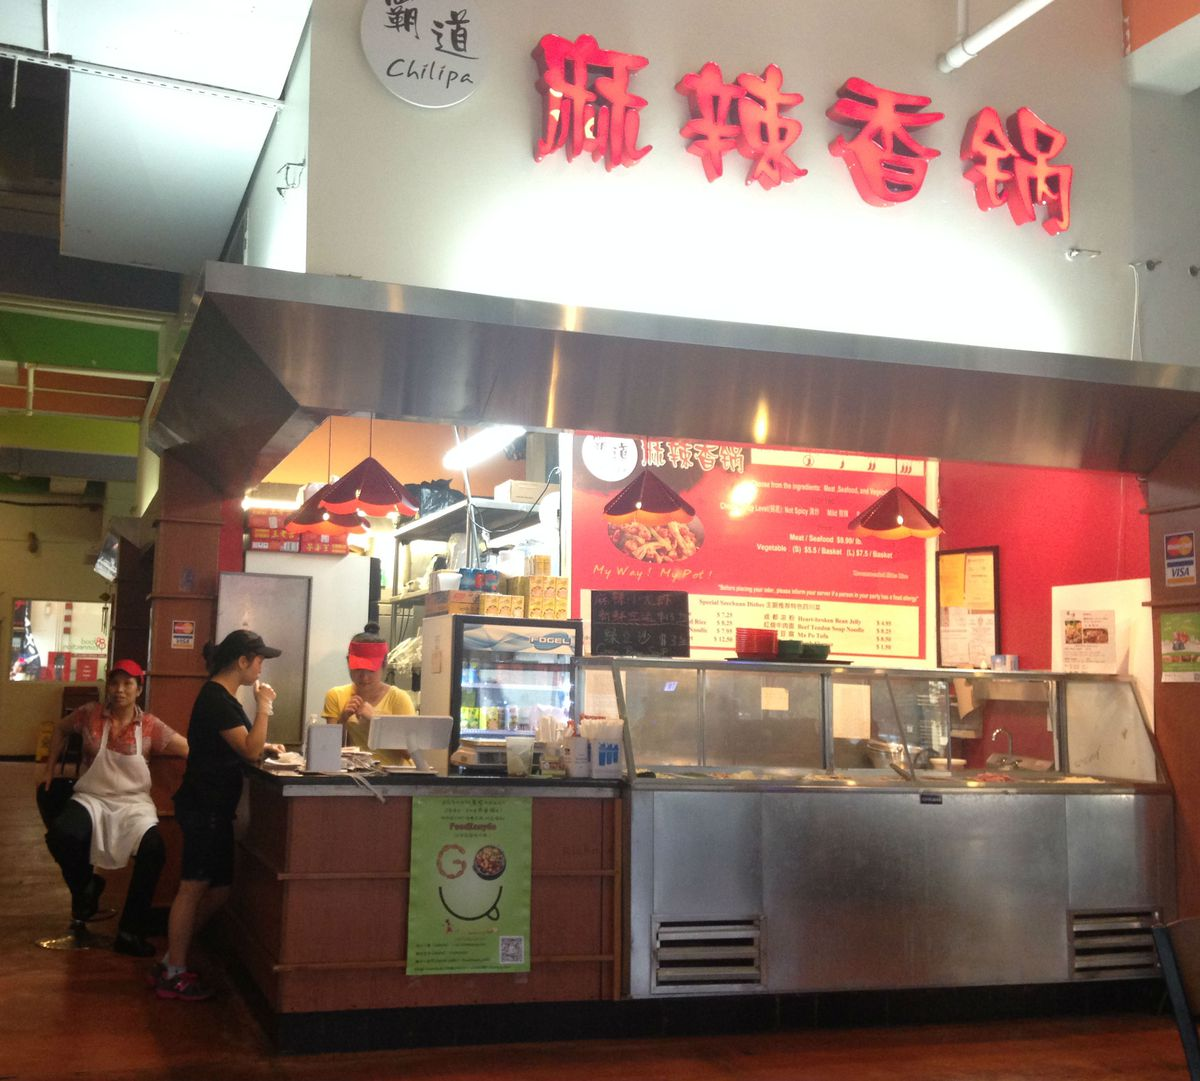 Super 88 Food Court Is A Cheap Destination For Heaping Helpings Of Asian Fare Eater Boston